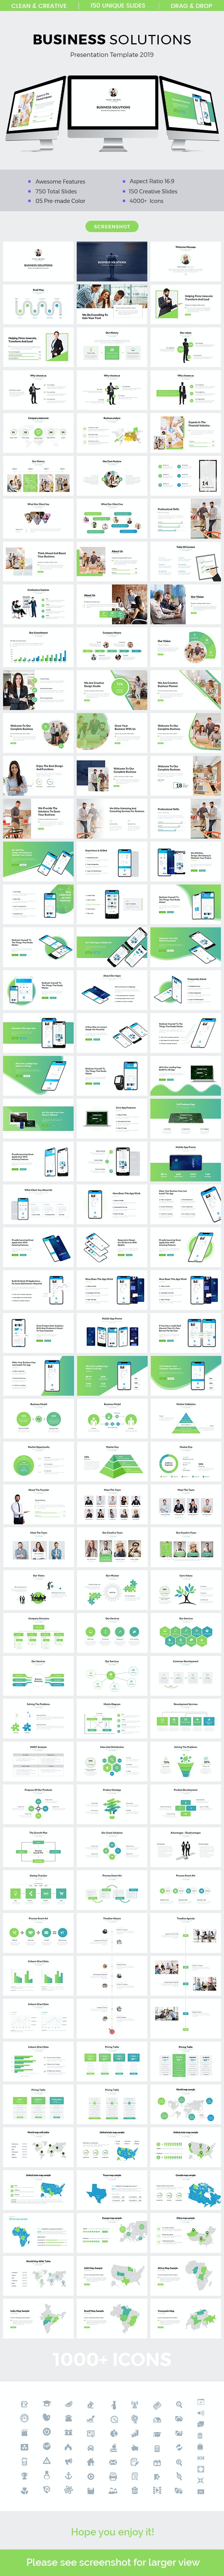 Business Solutions Powerpoint Template 2019 - Business PowerPoint Templates